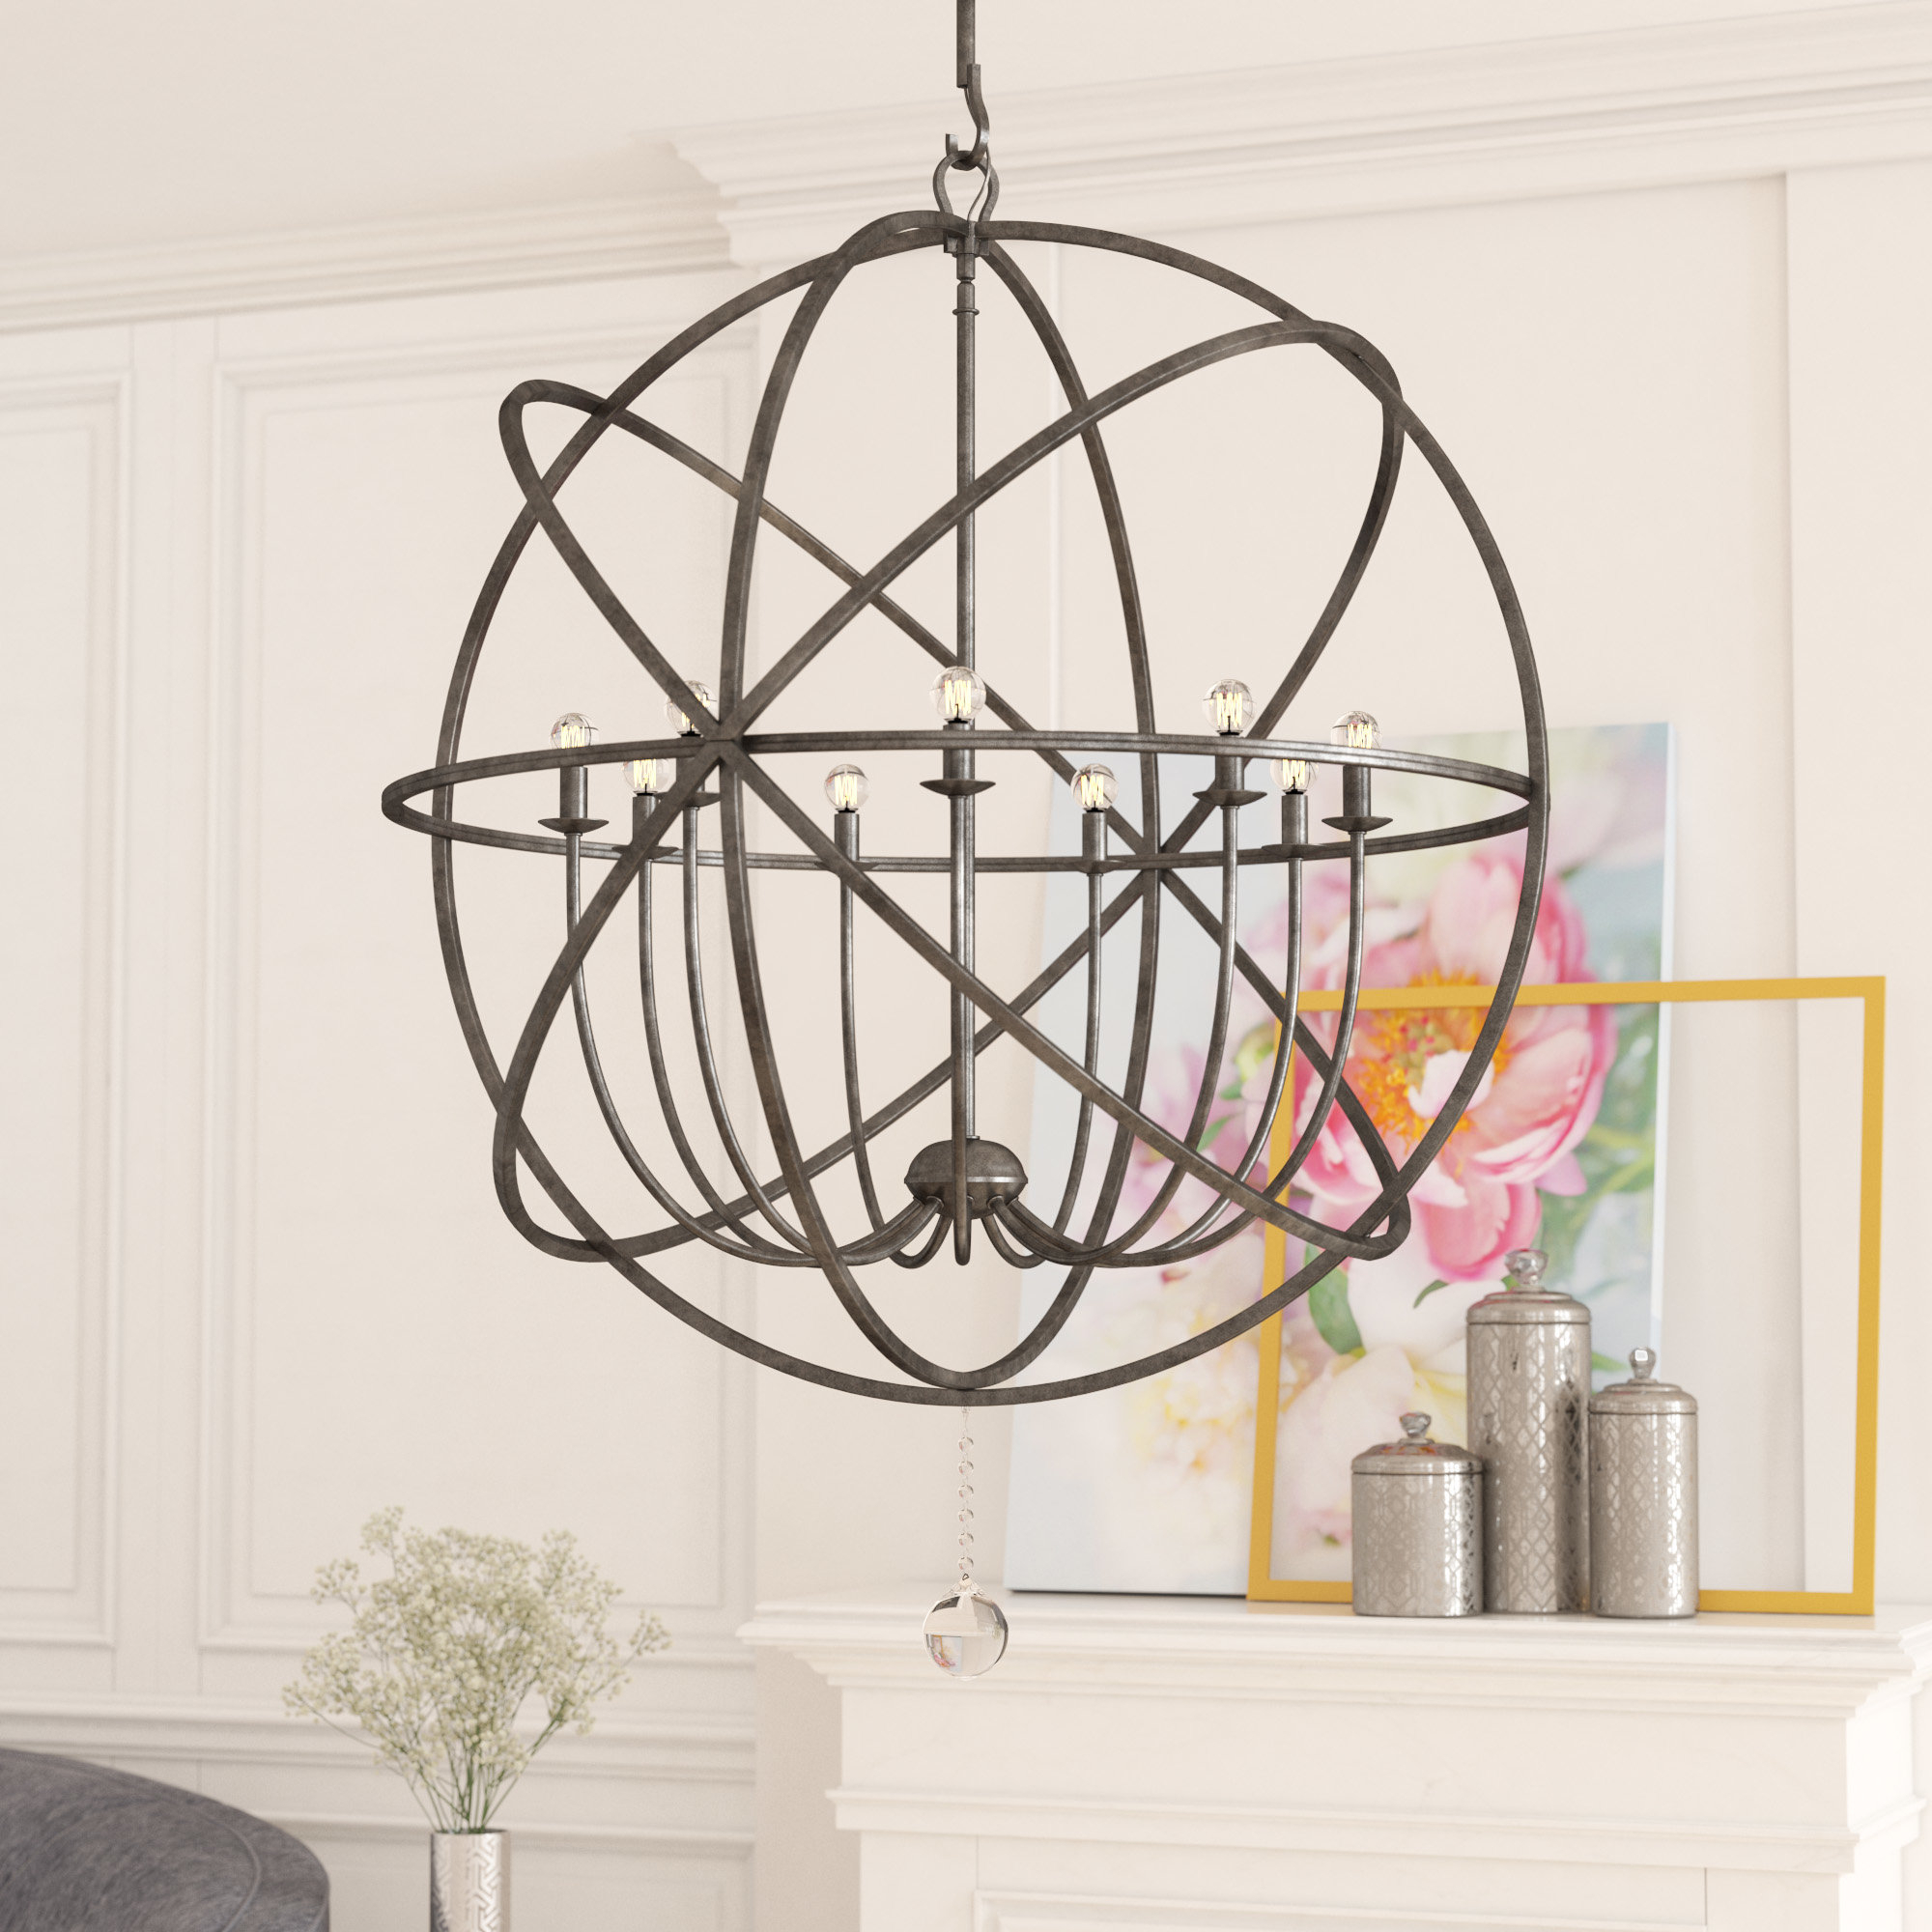 Gregoire 6 Light Globe Chandeliers With Newest Gregoire 9 Light Globe Chandelier (Gallery 7 of 20)